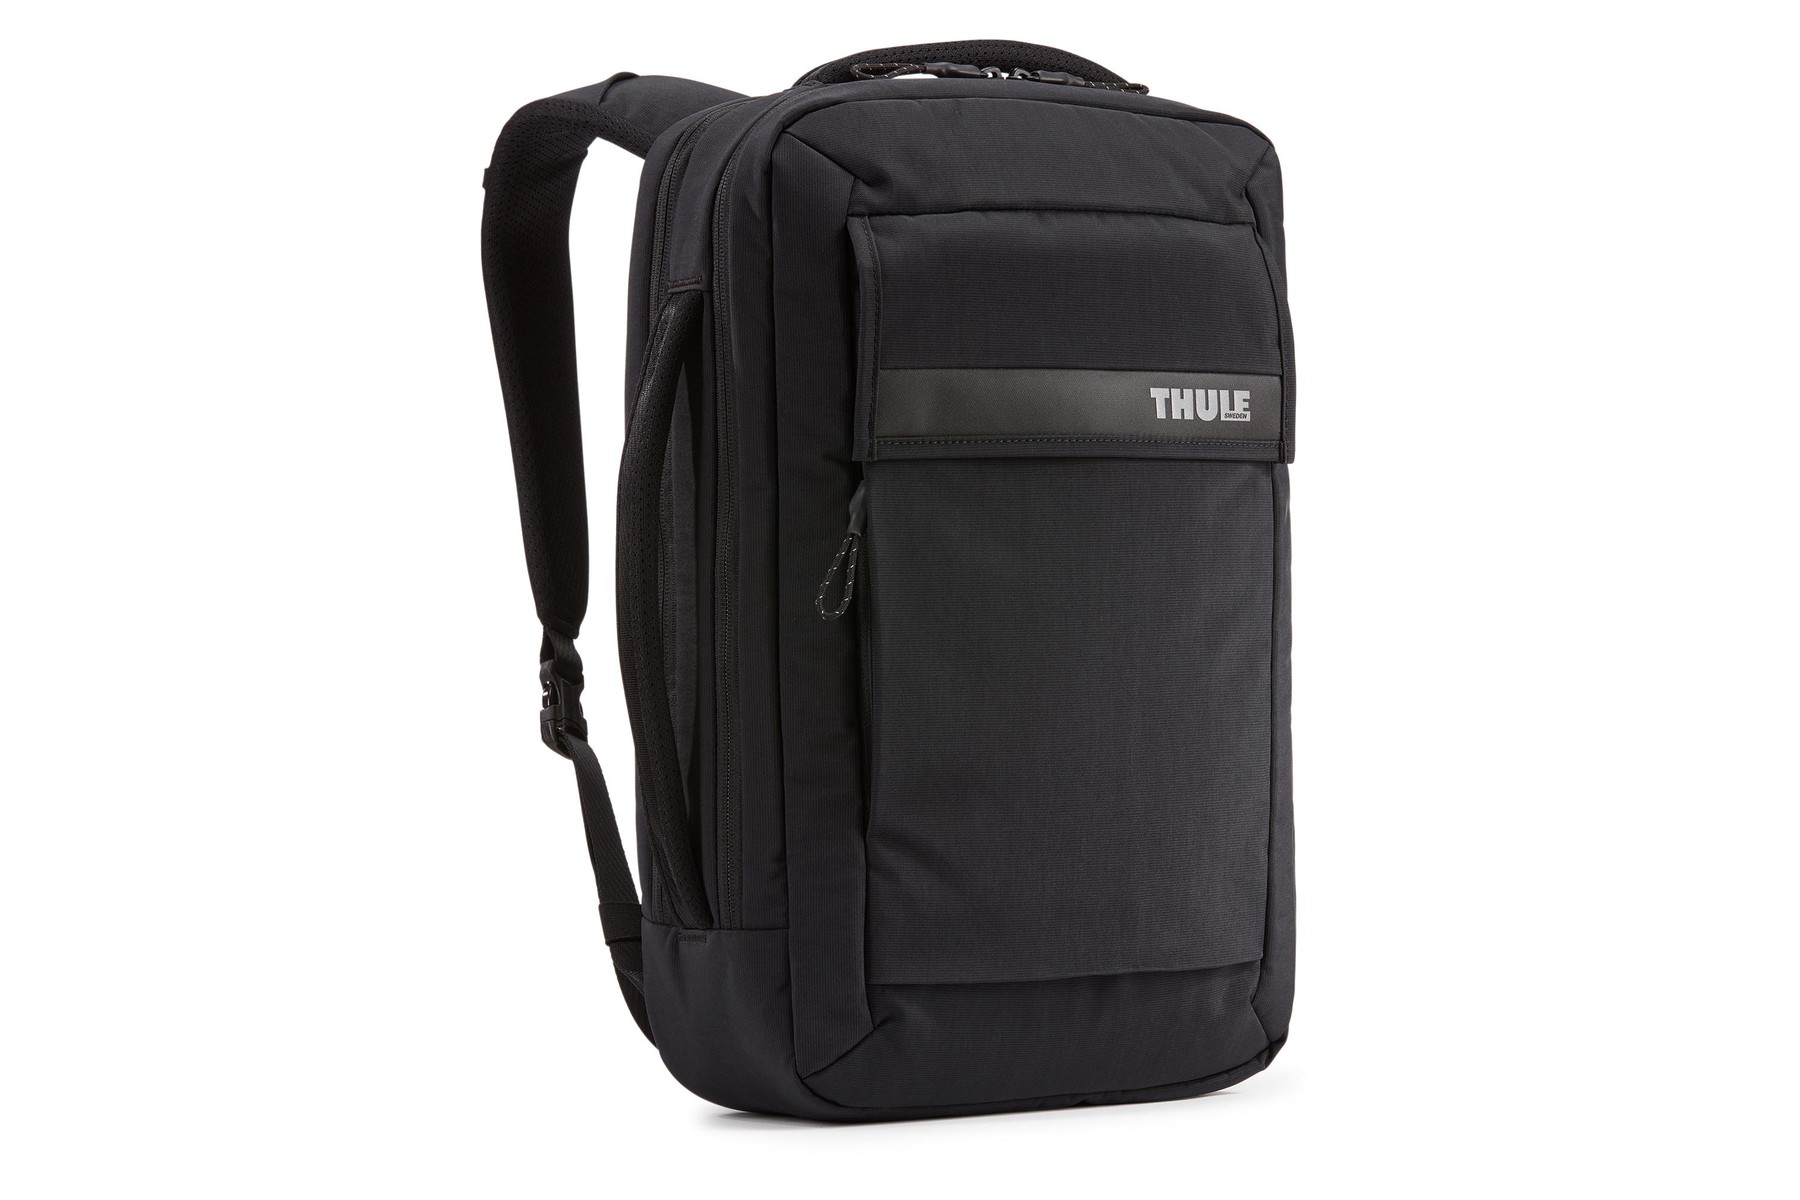 Thule Paramount 2 Convertible Laptop Bag 15.6